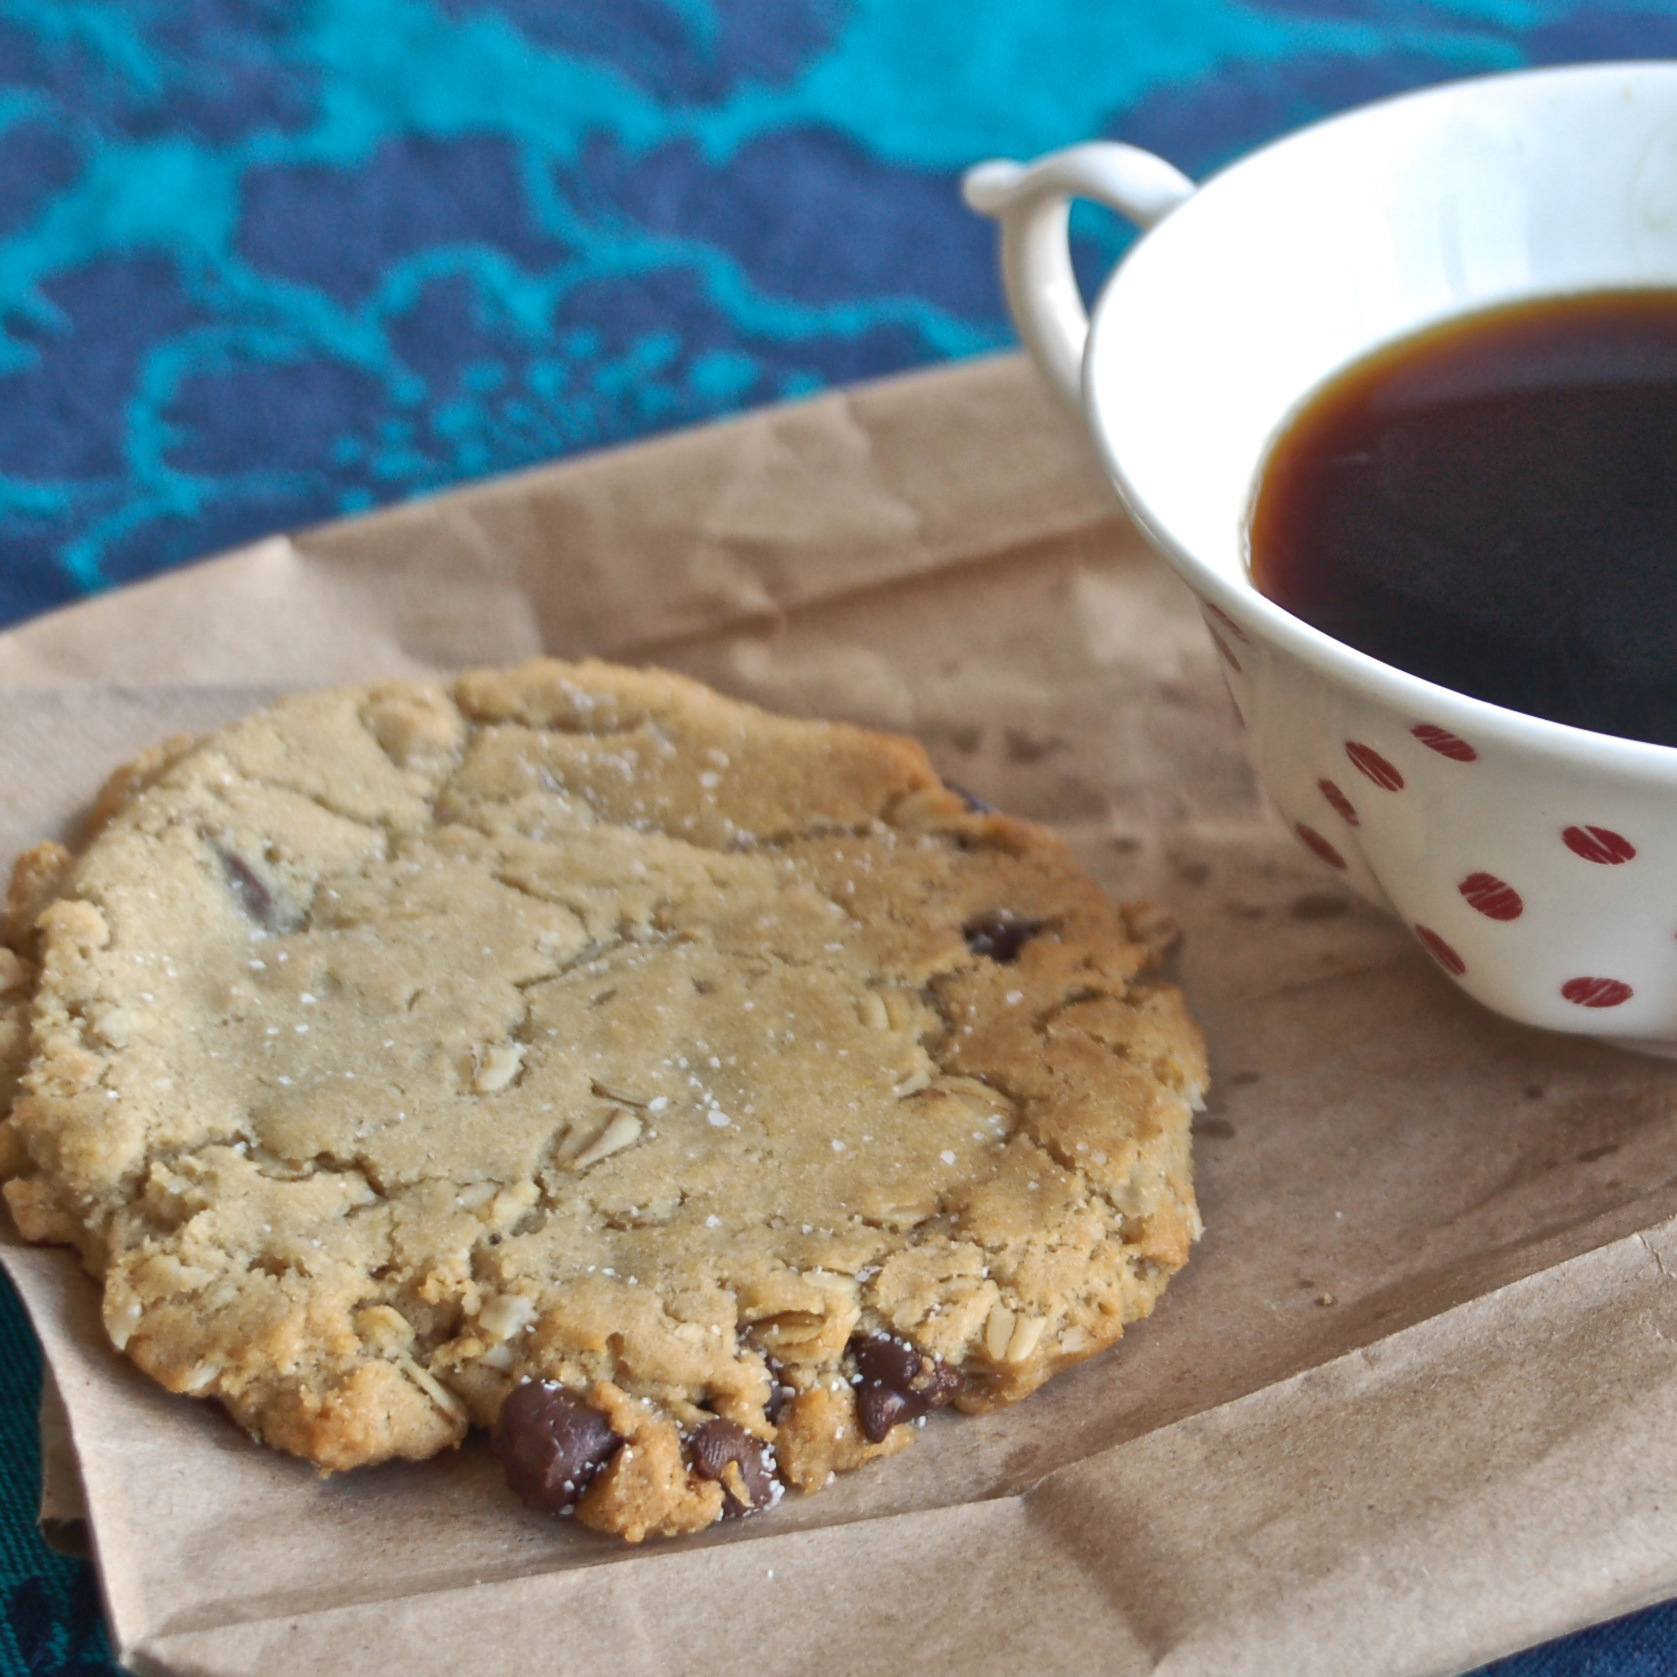 Vegan Sweet & salty Chocolate Chip Cookies l inmybowl.com